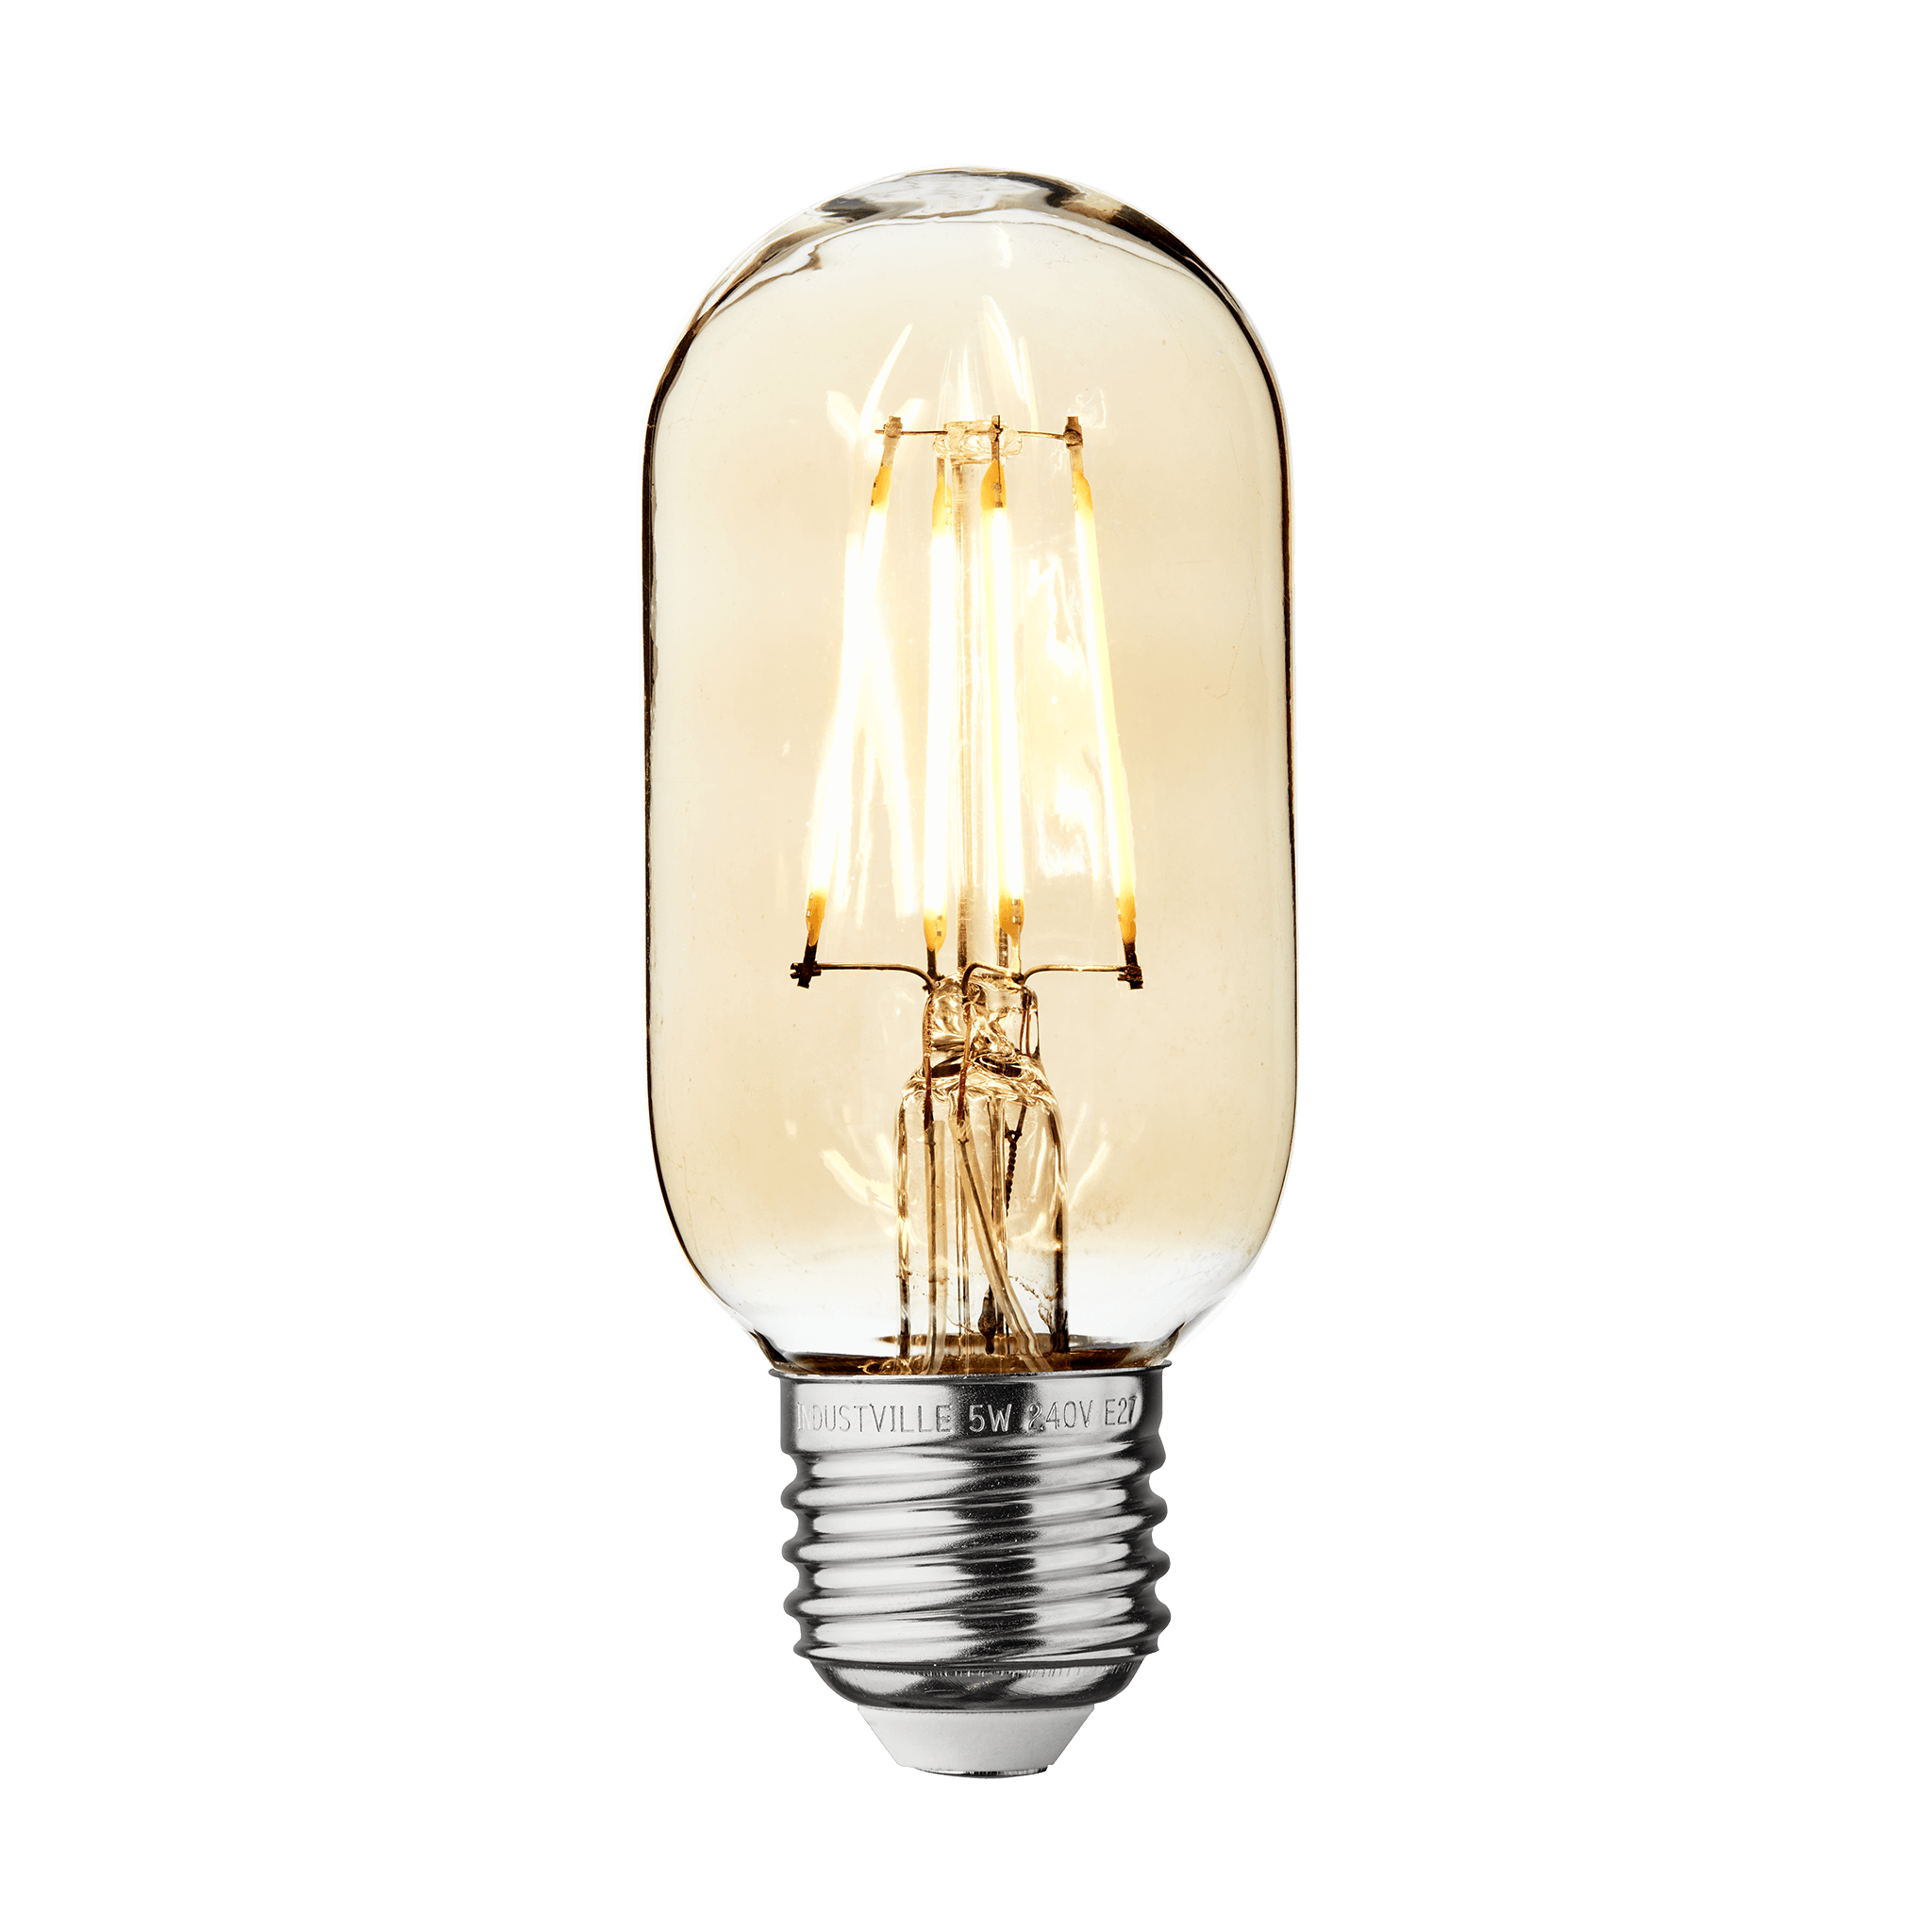 0101 Industville Amber small cylinder LED bulb 5W